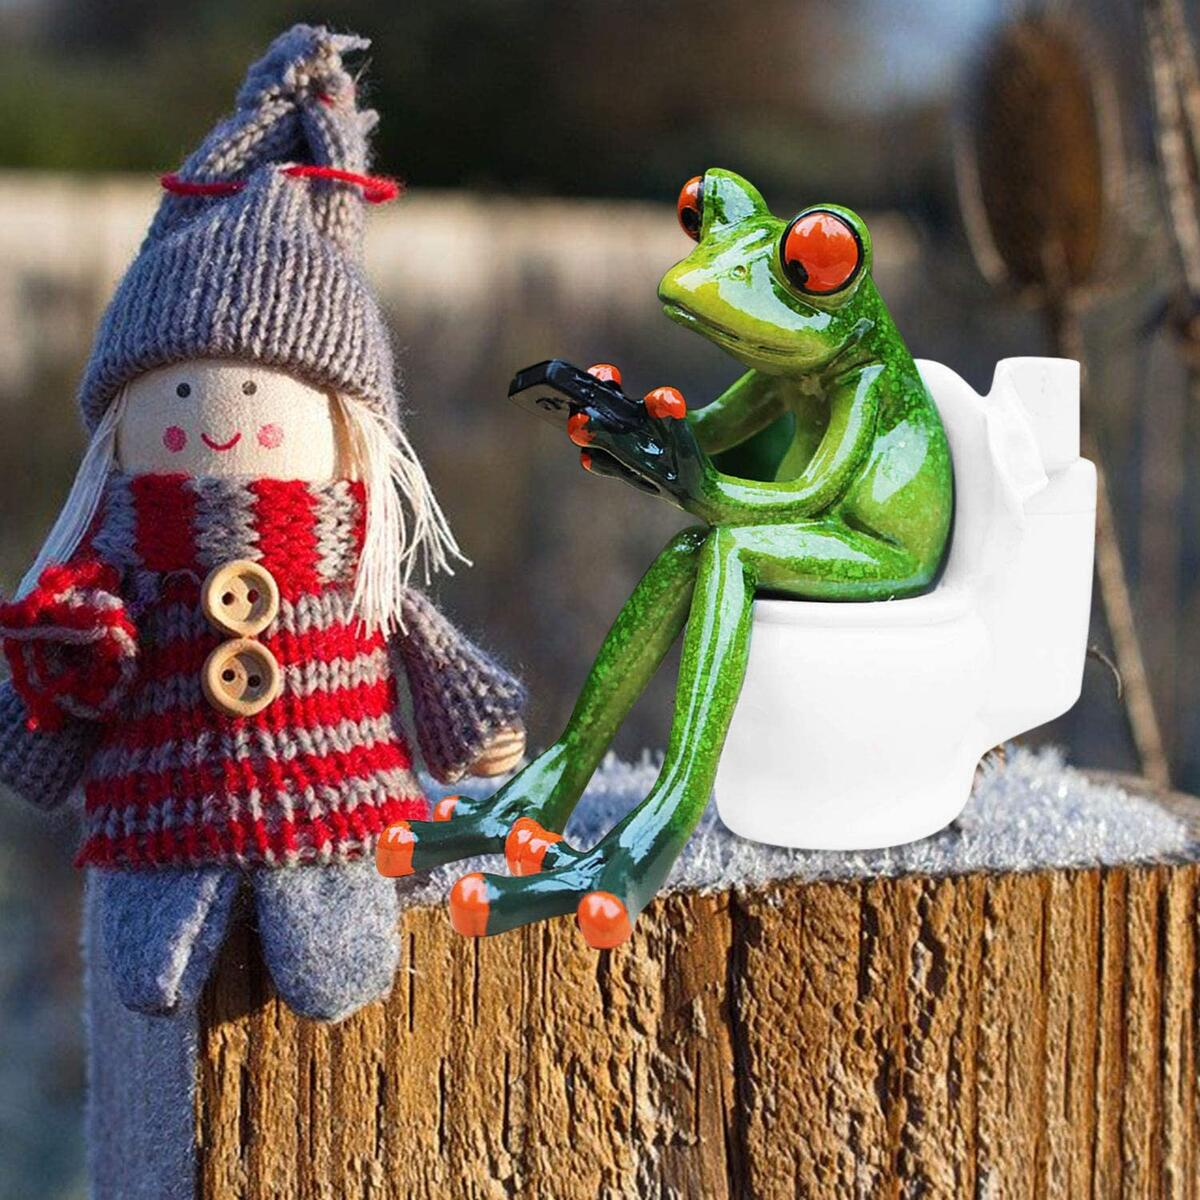 HAPTIME 4.3 inch Adorable Red Eyed Tree Frog Sitting on Toilet and Texting, Funny Decor Figurine for Home Desk Bathroom Decoration (Style A)